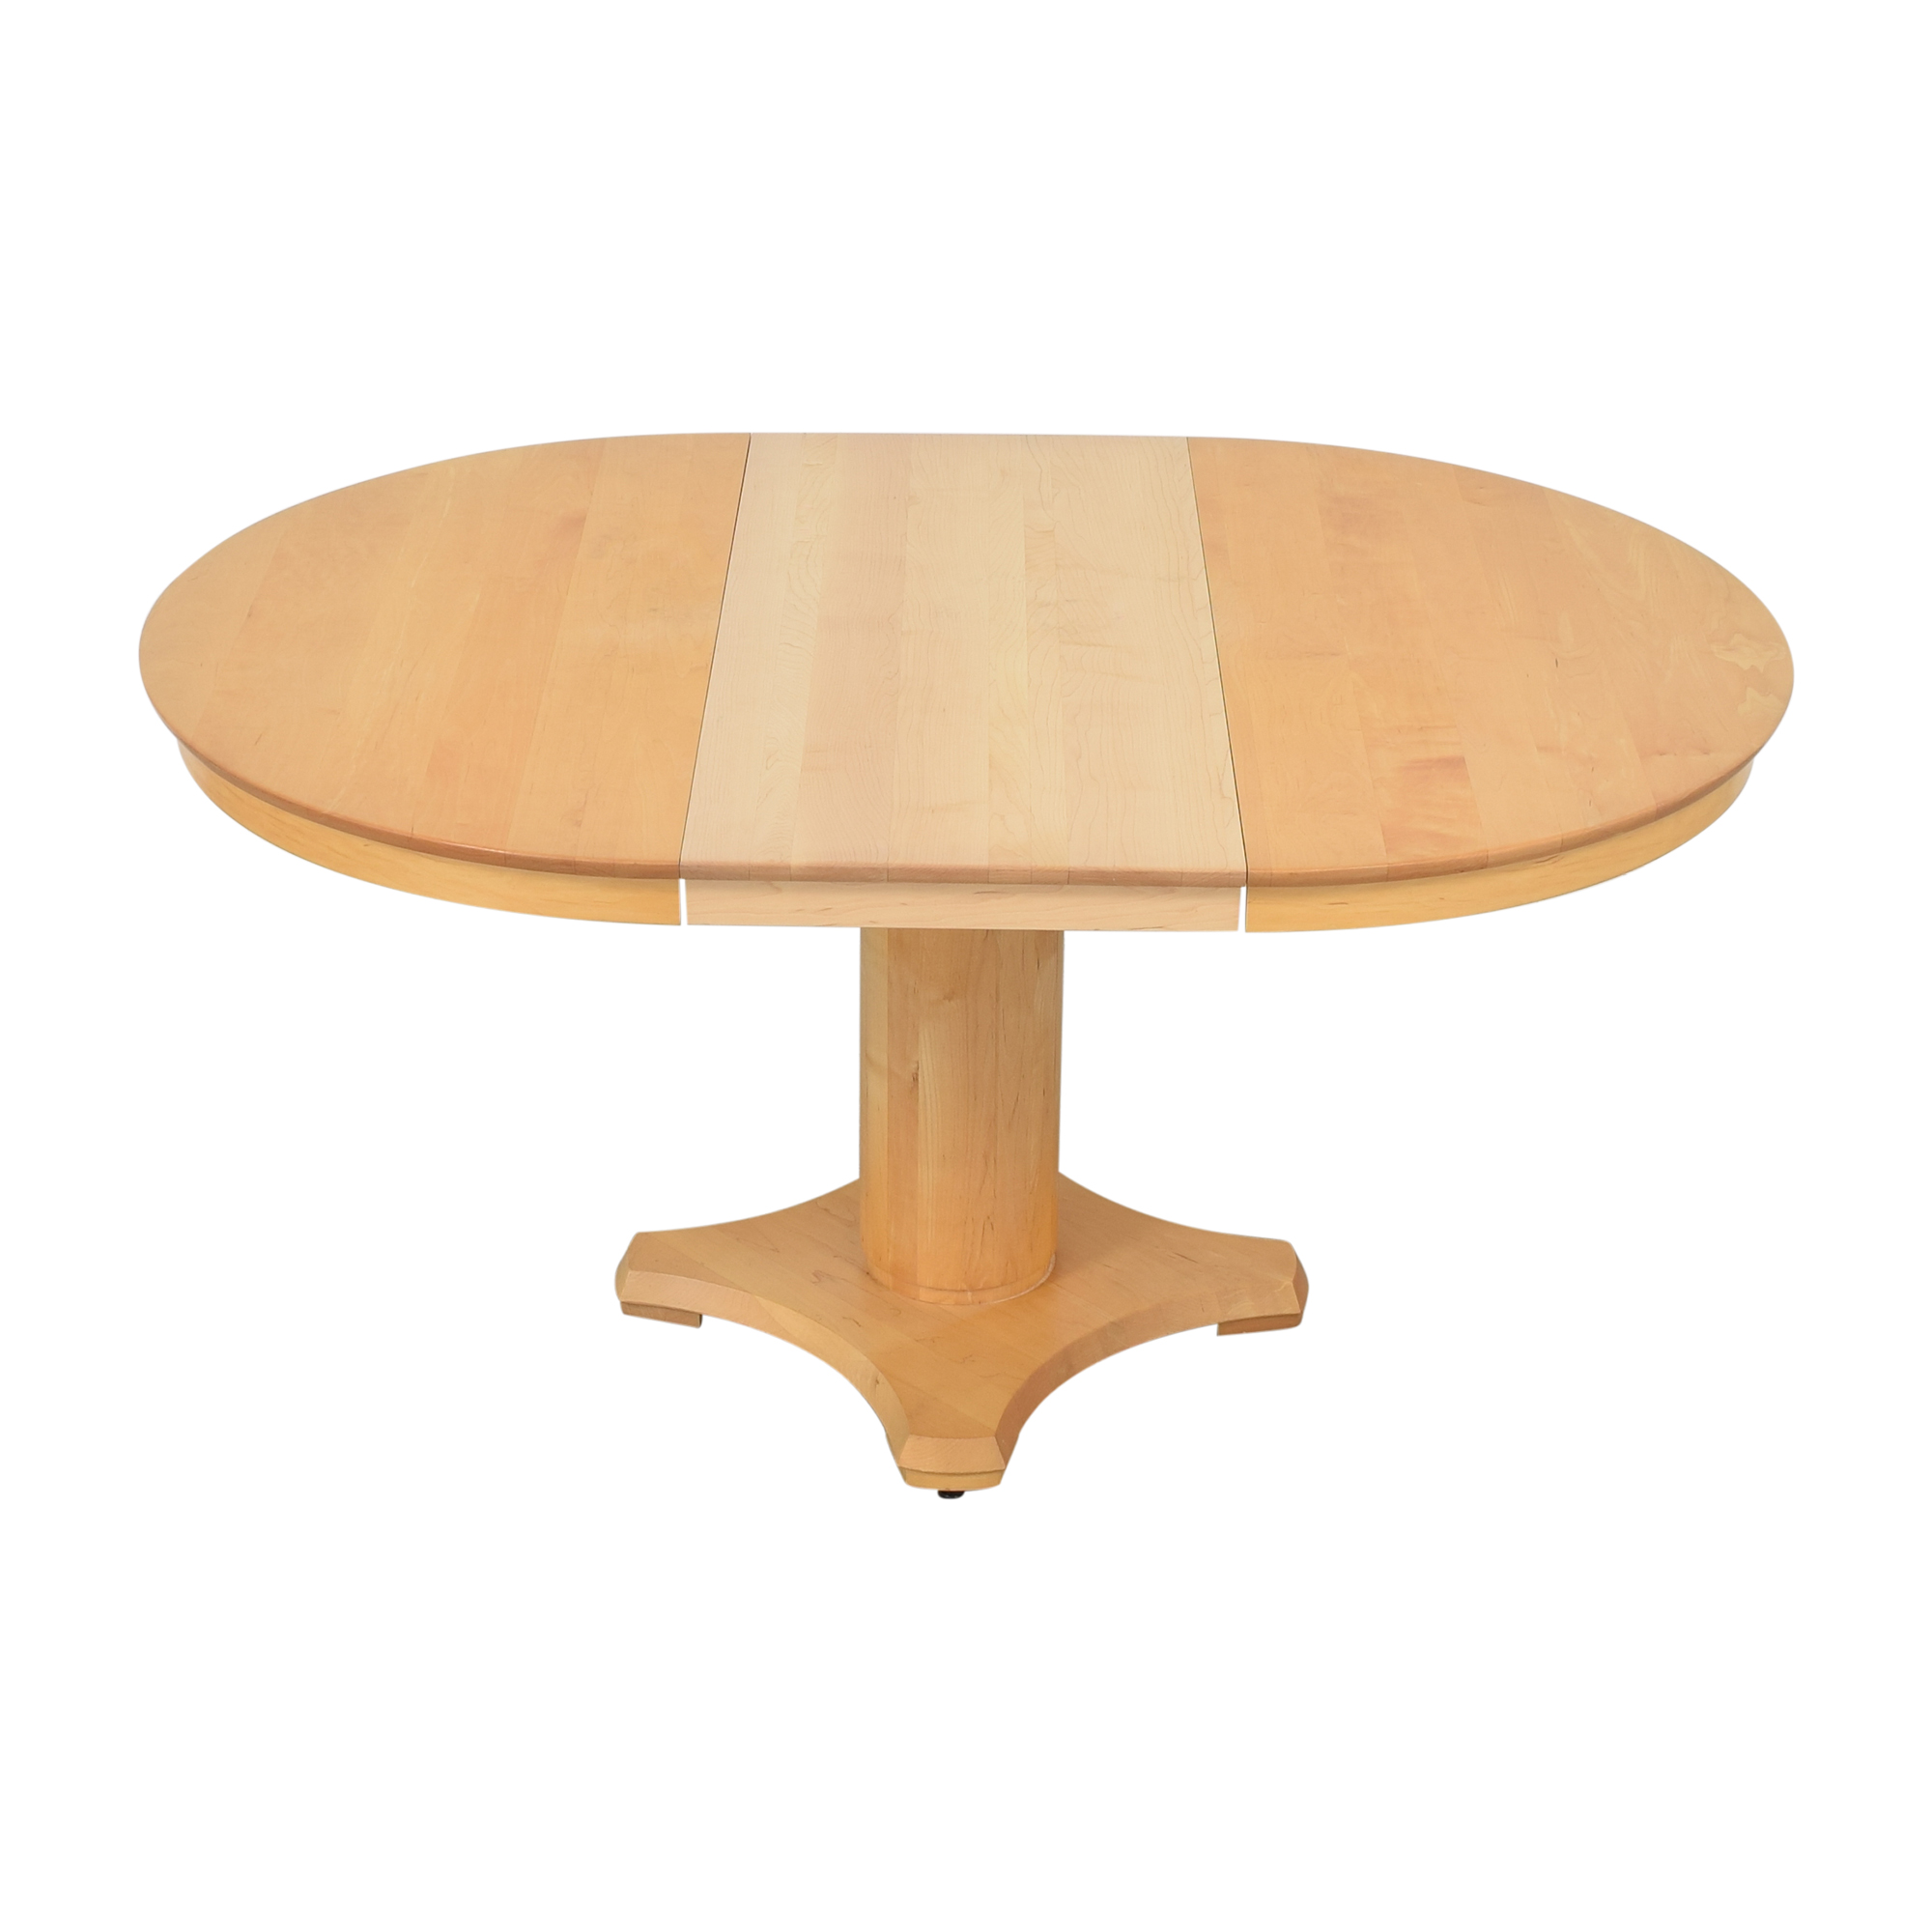 buy Crate & Barrel Dining Round Dinner Table Crate & Barrel Tables